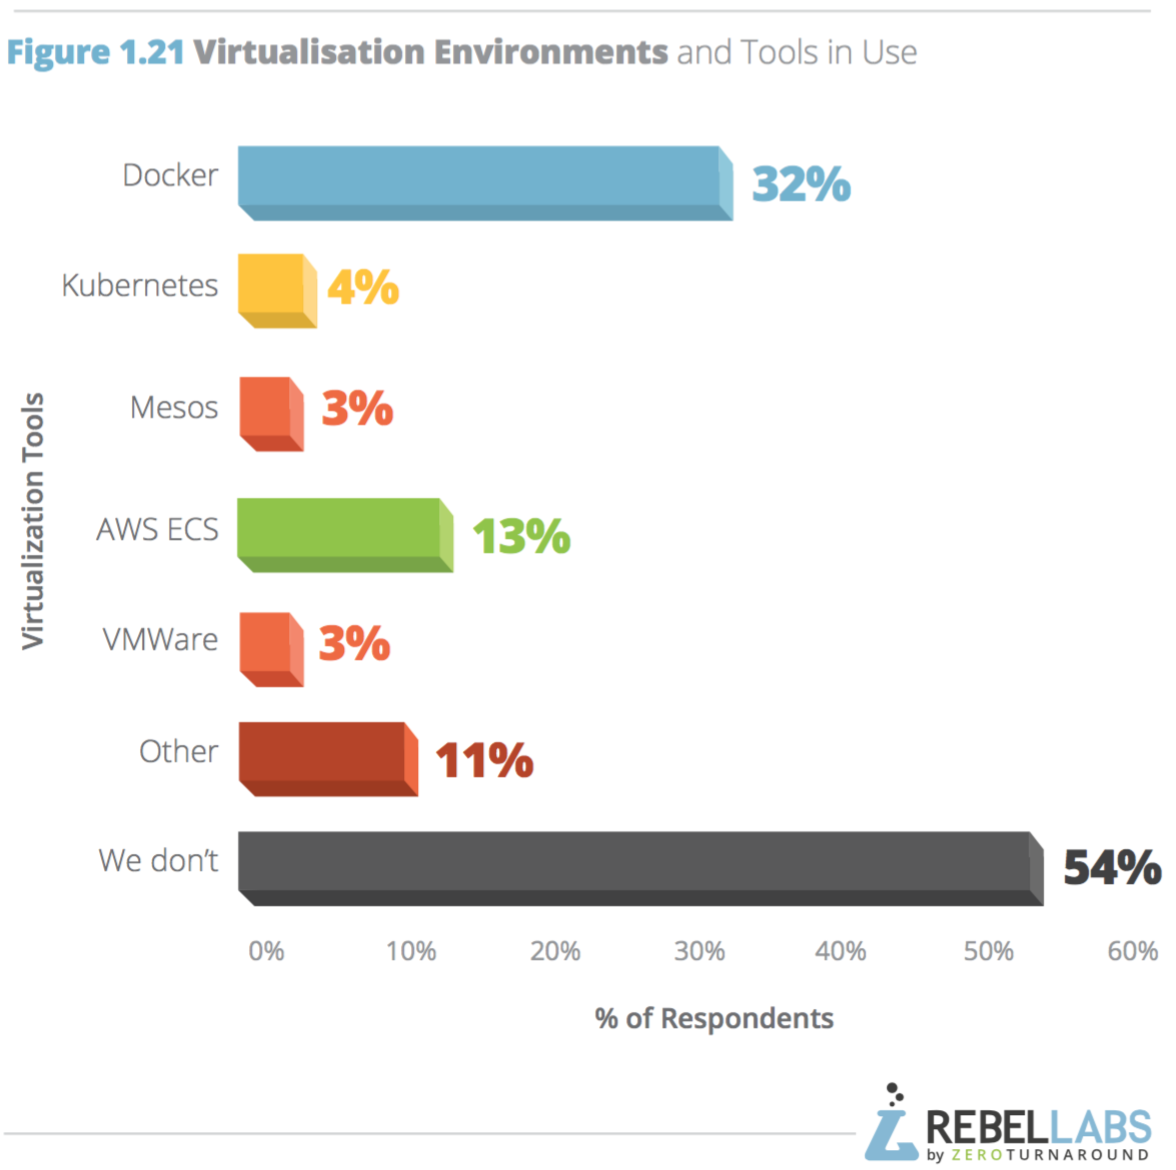 bar chart breakdown of virtualization environments and tools usage